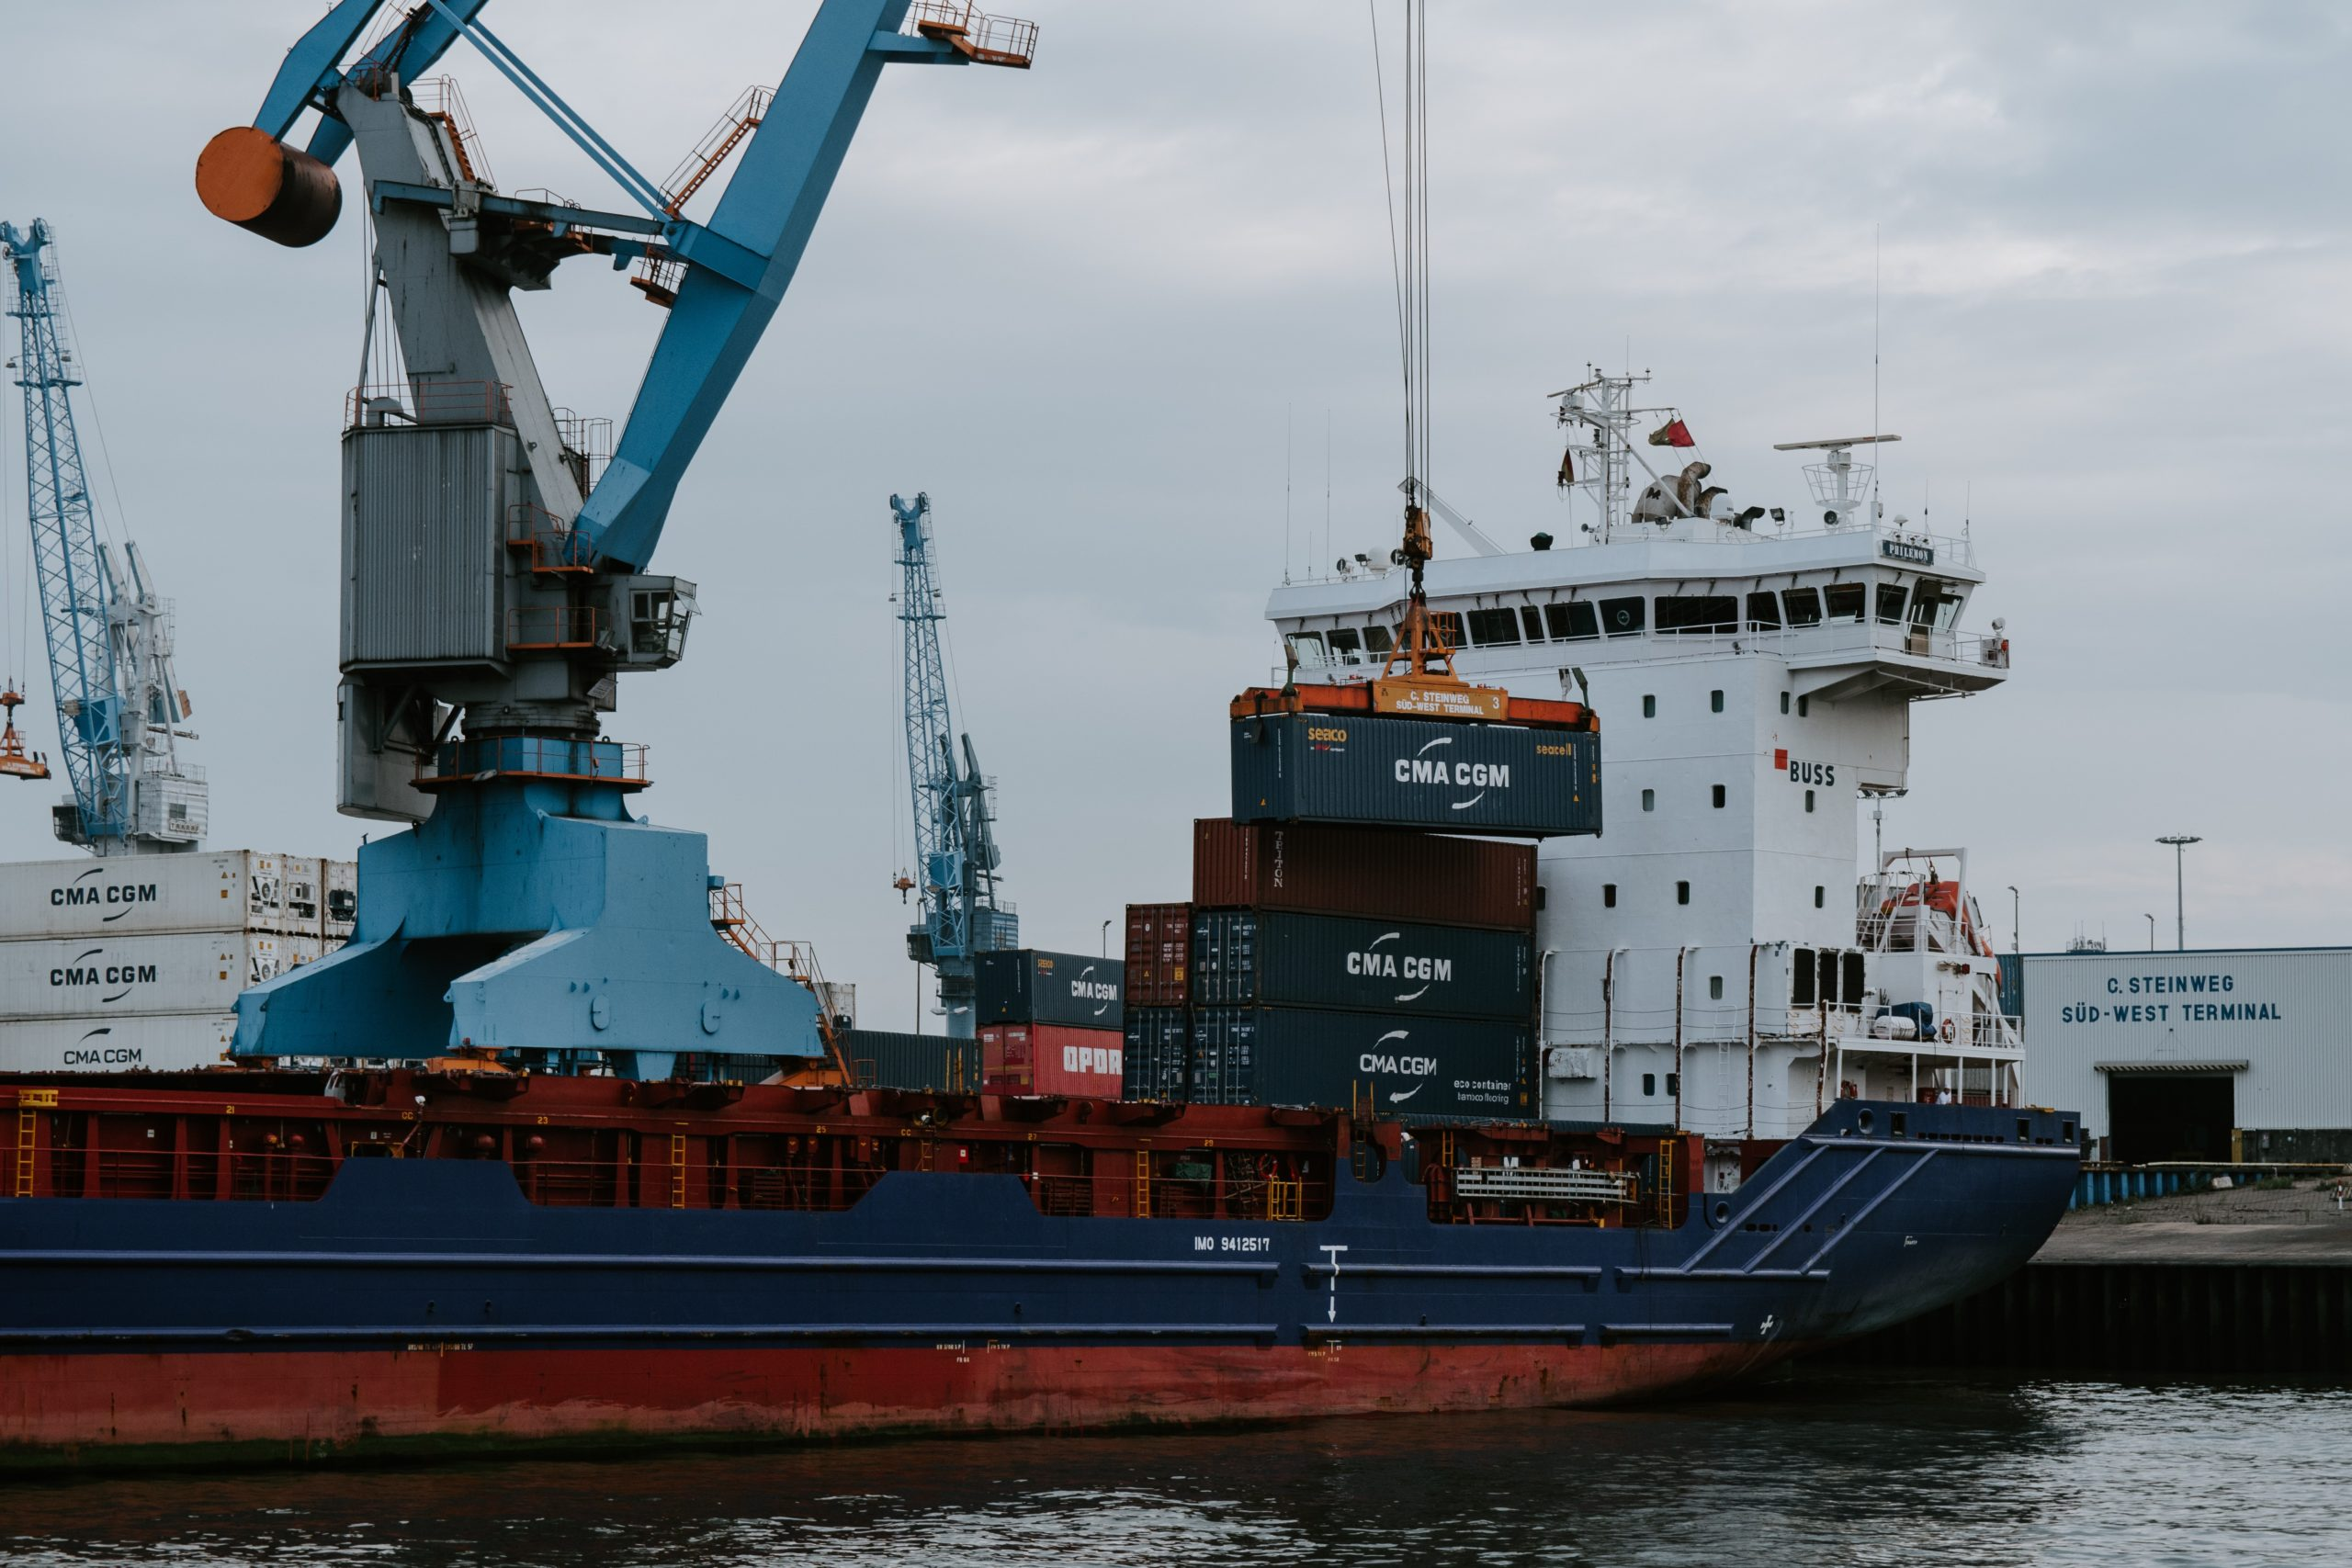 Proman welcomes UK push for absolute zero shipping emissions by 2050